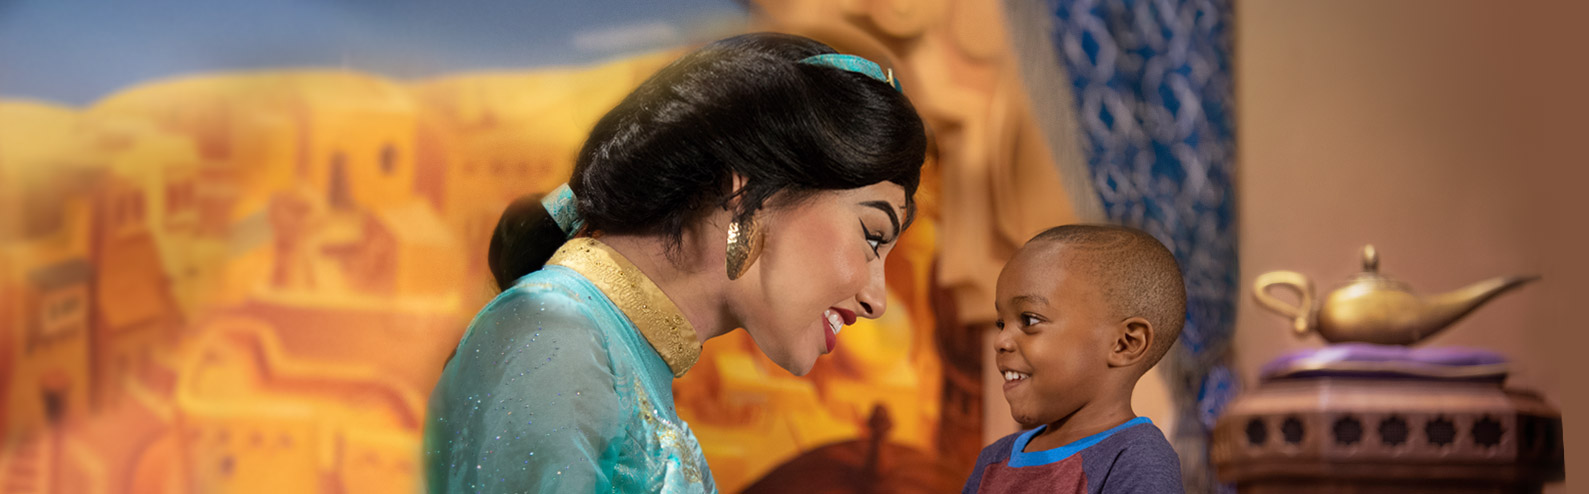 Jasmine meeting young guest at Epcot